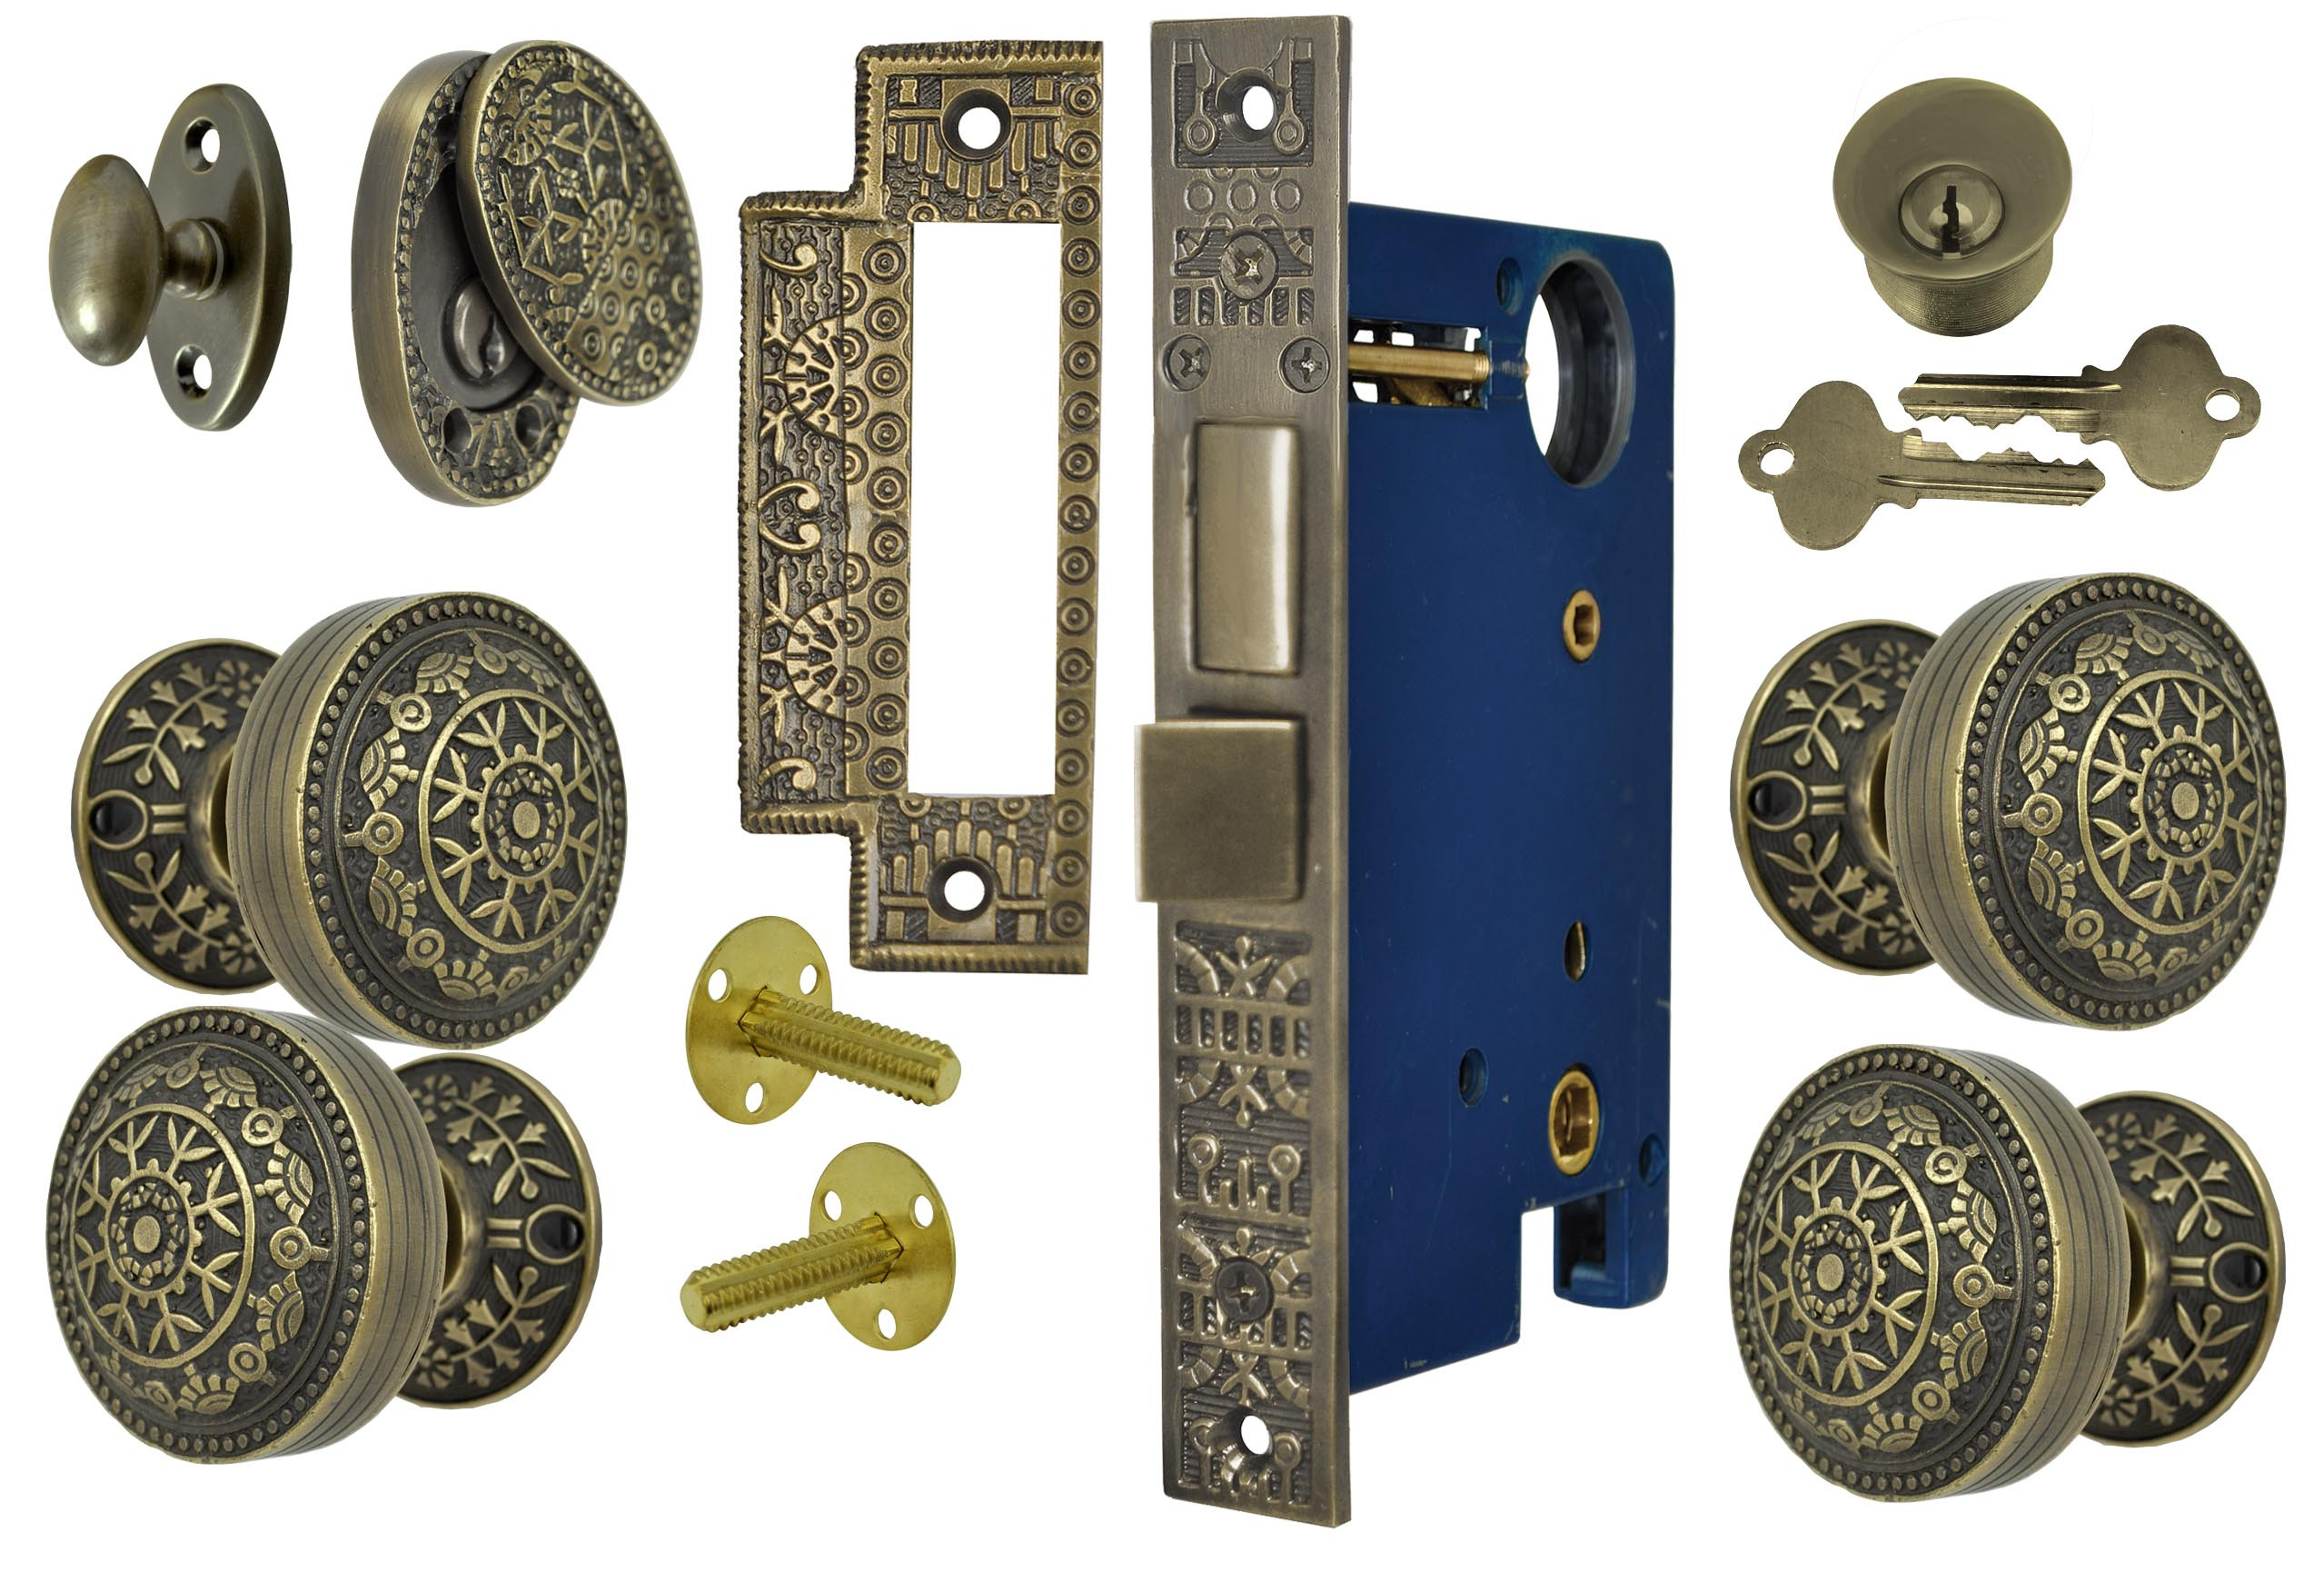 mgctlbxN$MZP mgctlbxV$5.1.11 mgctlbxL$C.  sc 1 st  Vintage Hardware u0026 Lighting & Vintage Hardware u0026 Lighting - Windsor Pattern Double Door Entry Set ...